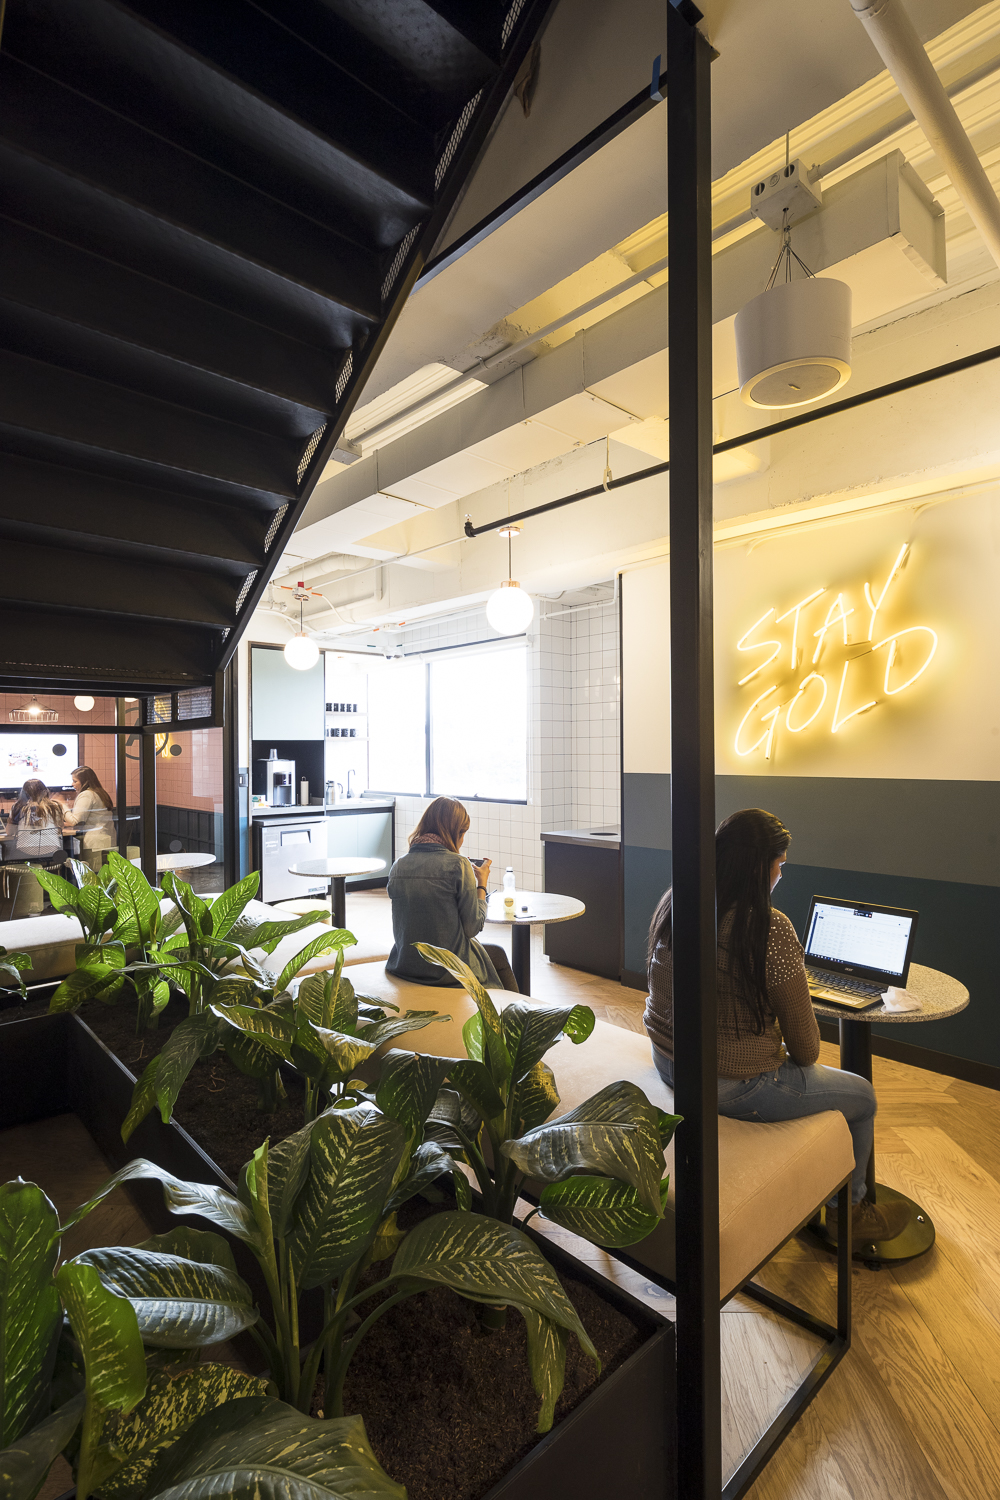 Good design is an essential component of WeWork's ethos.